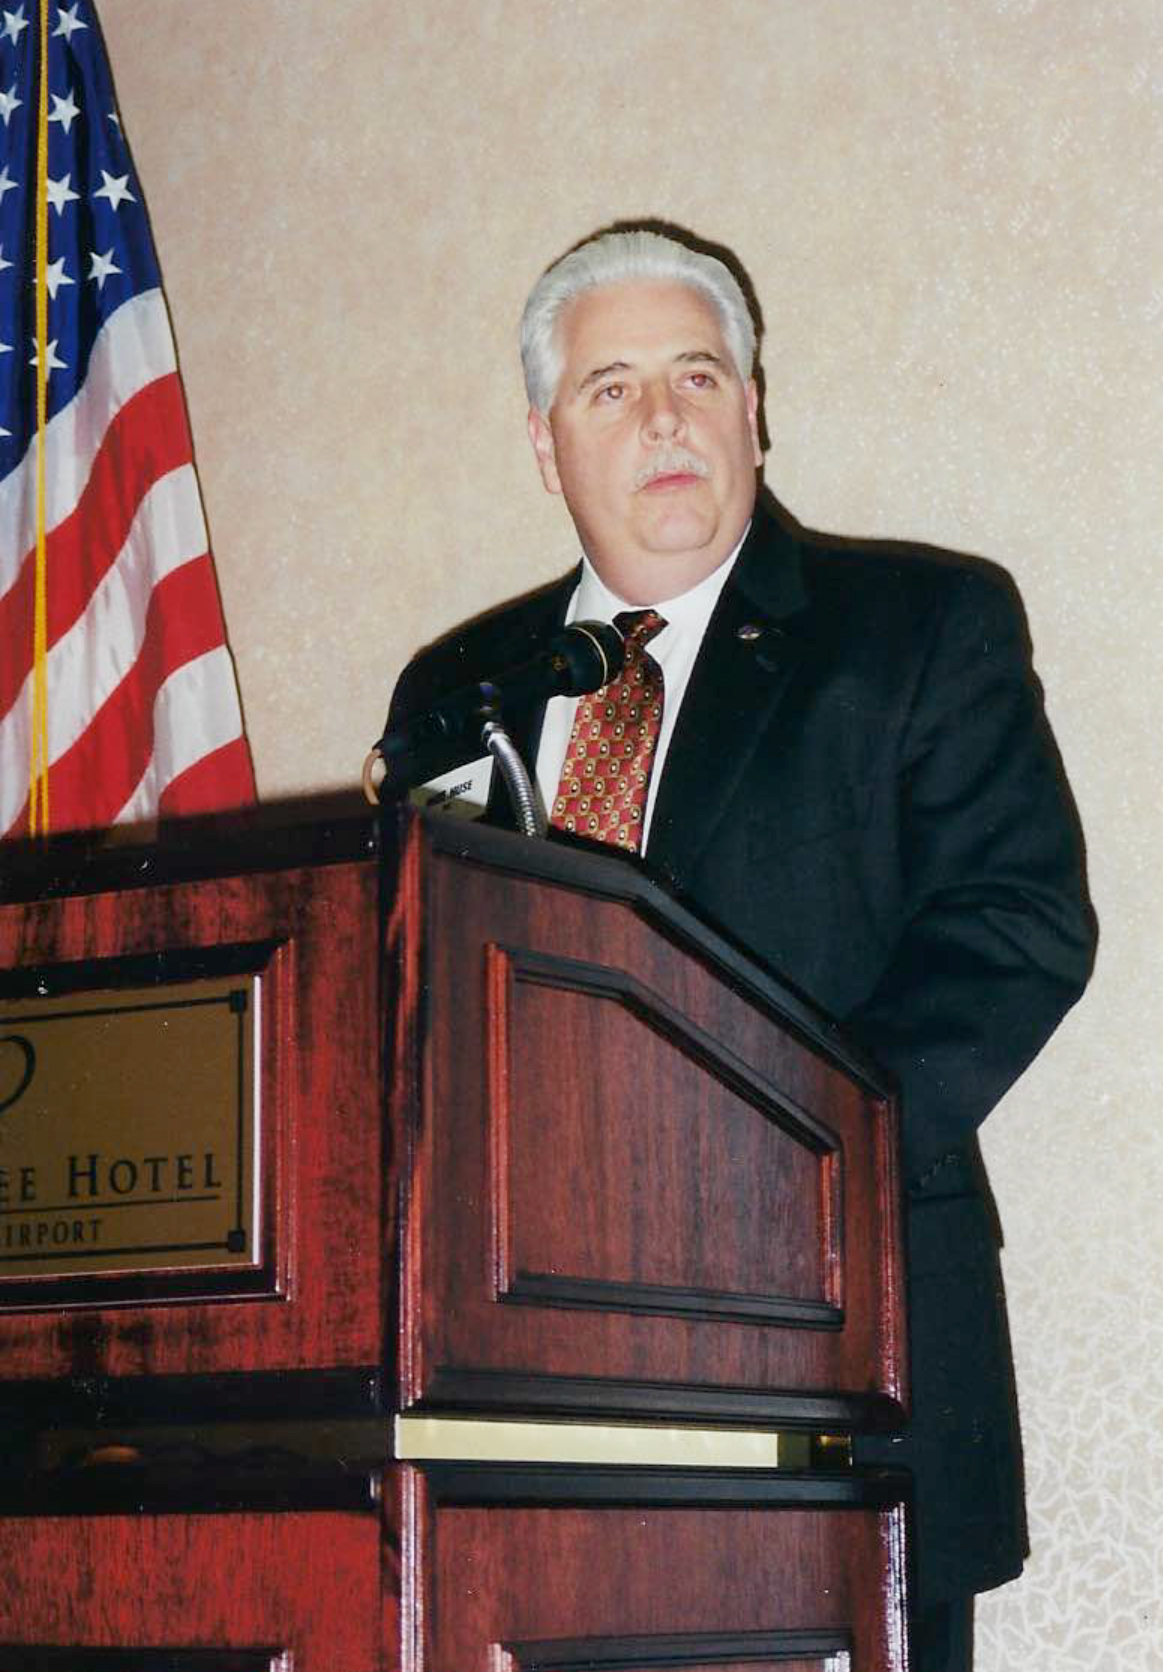 Mike Speaking as President of QFC